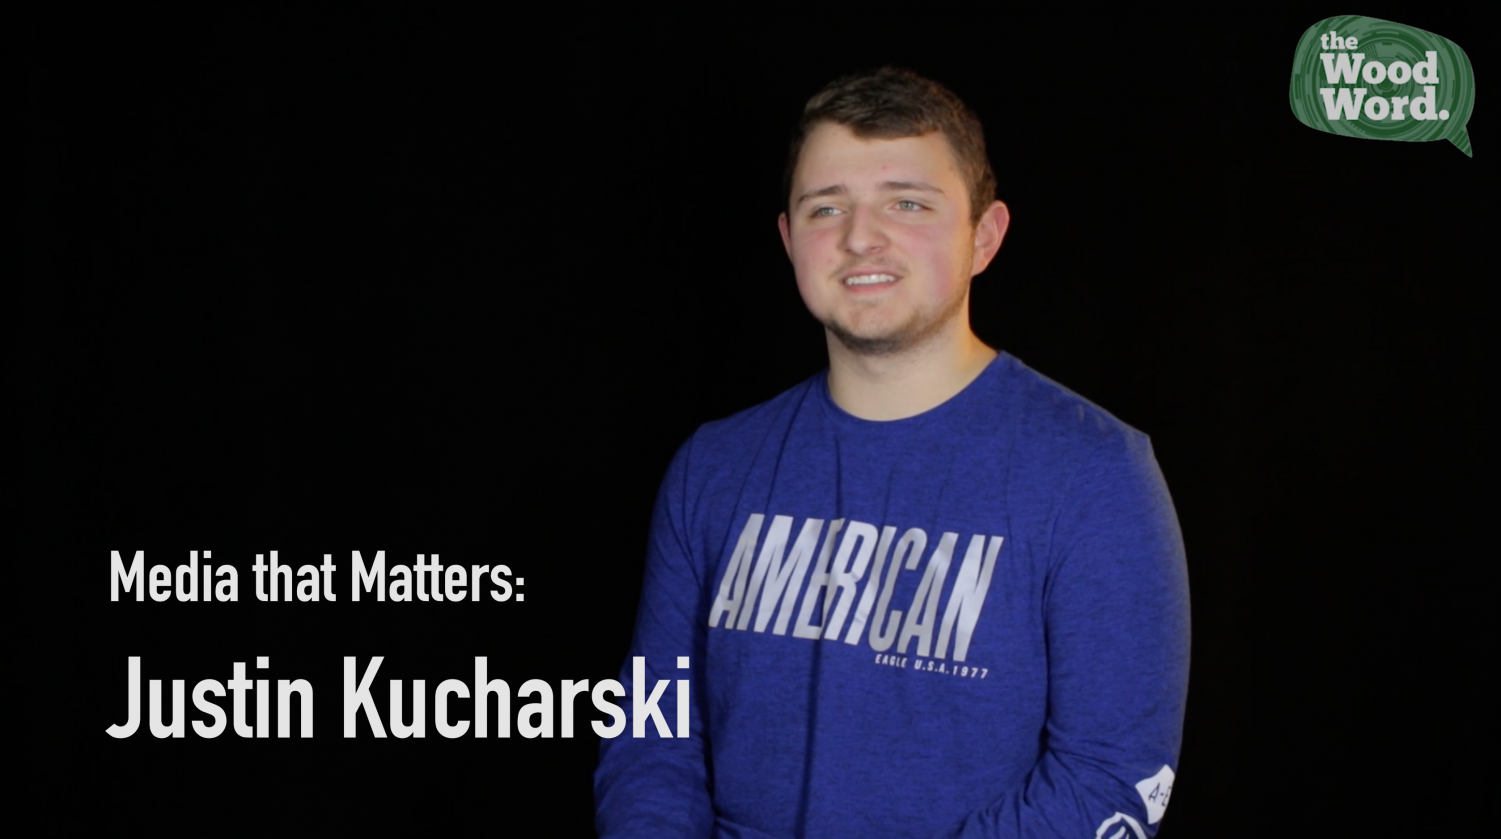 Media that Matters: Justin Kucharski